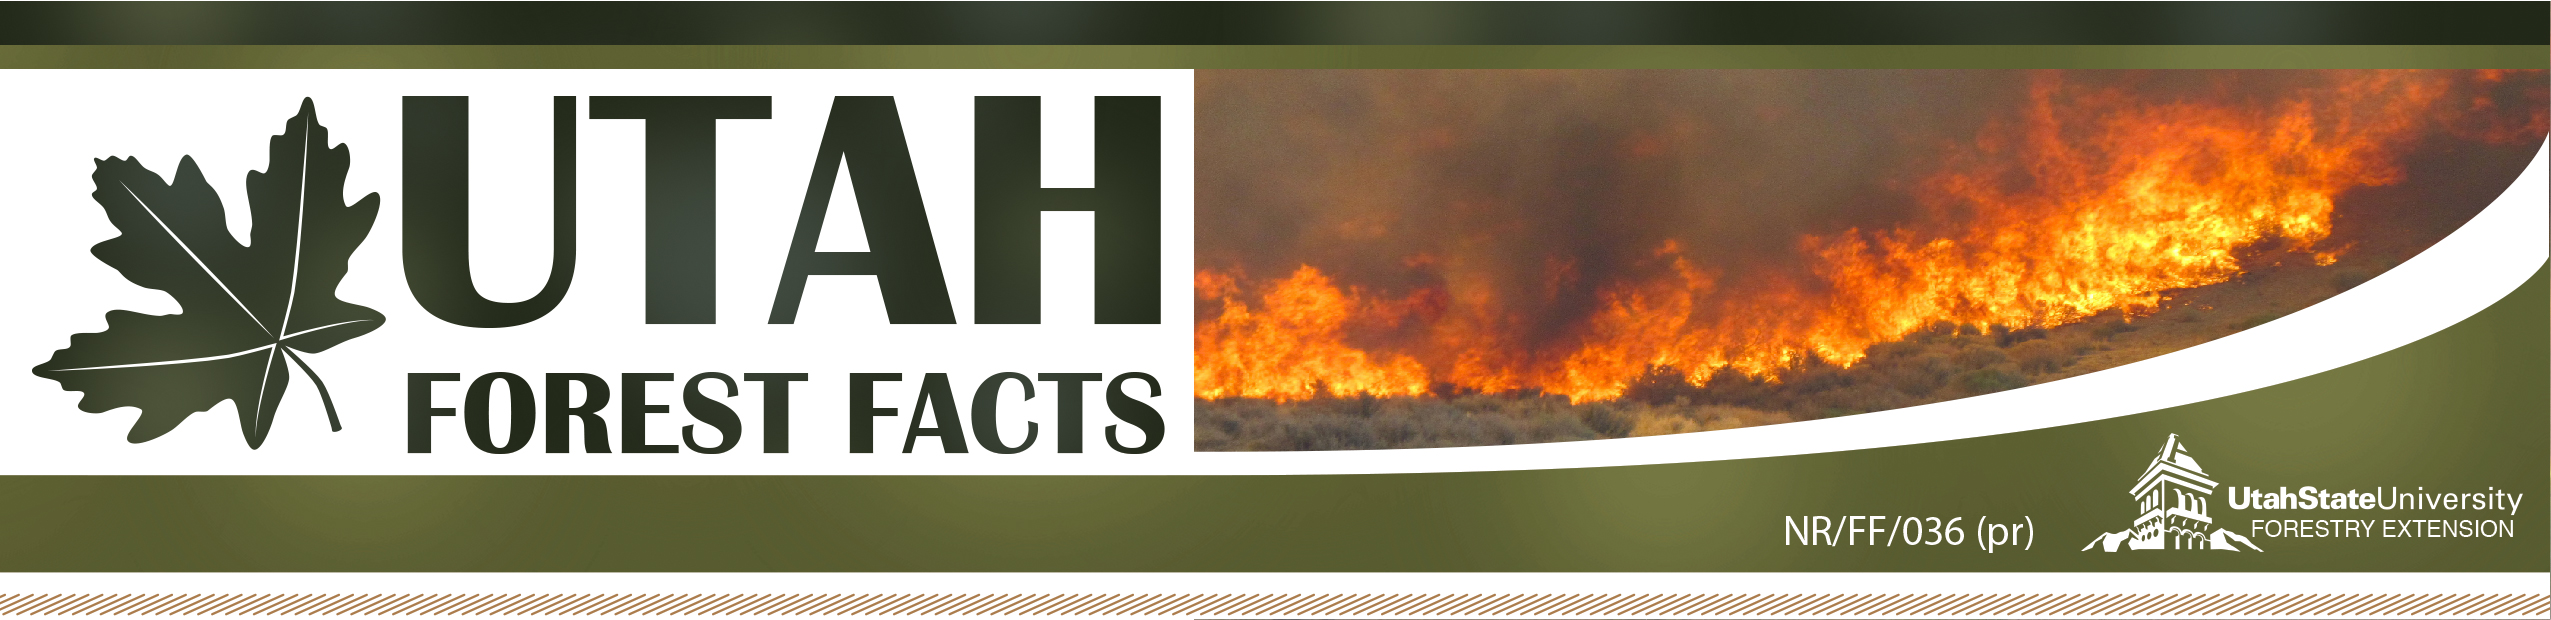 Protect Your Home from Wildfire: Ember Awareness Checklist - Utah Forest Fact Sheet 036